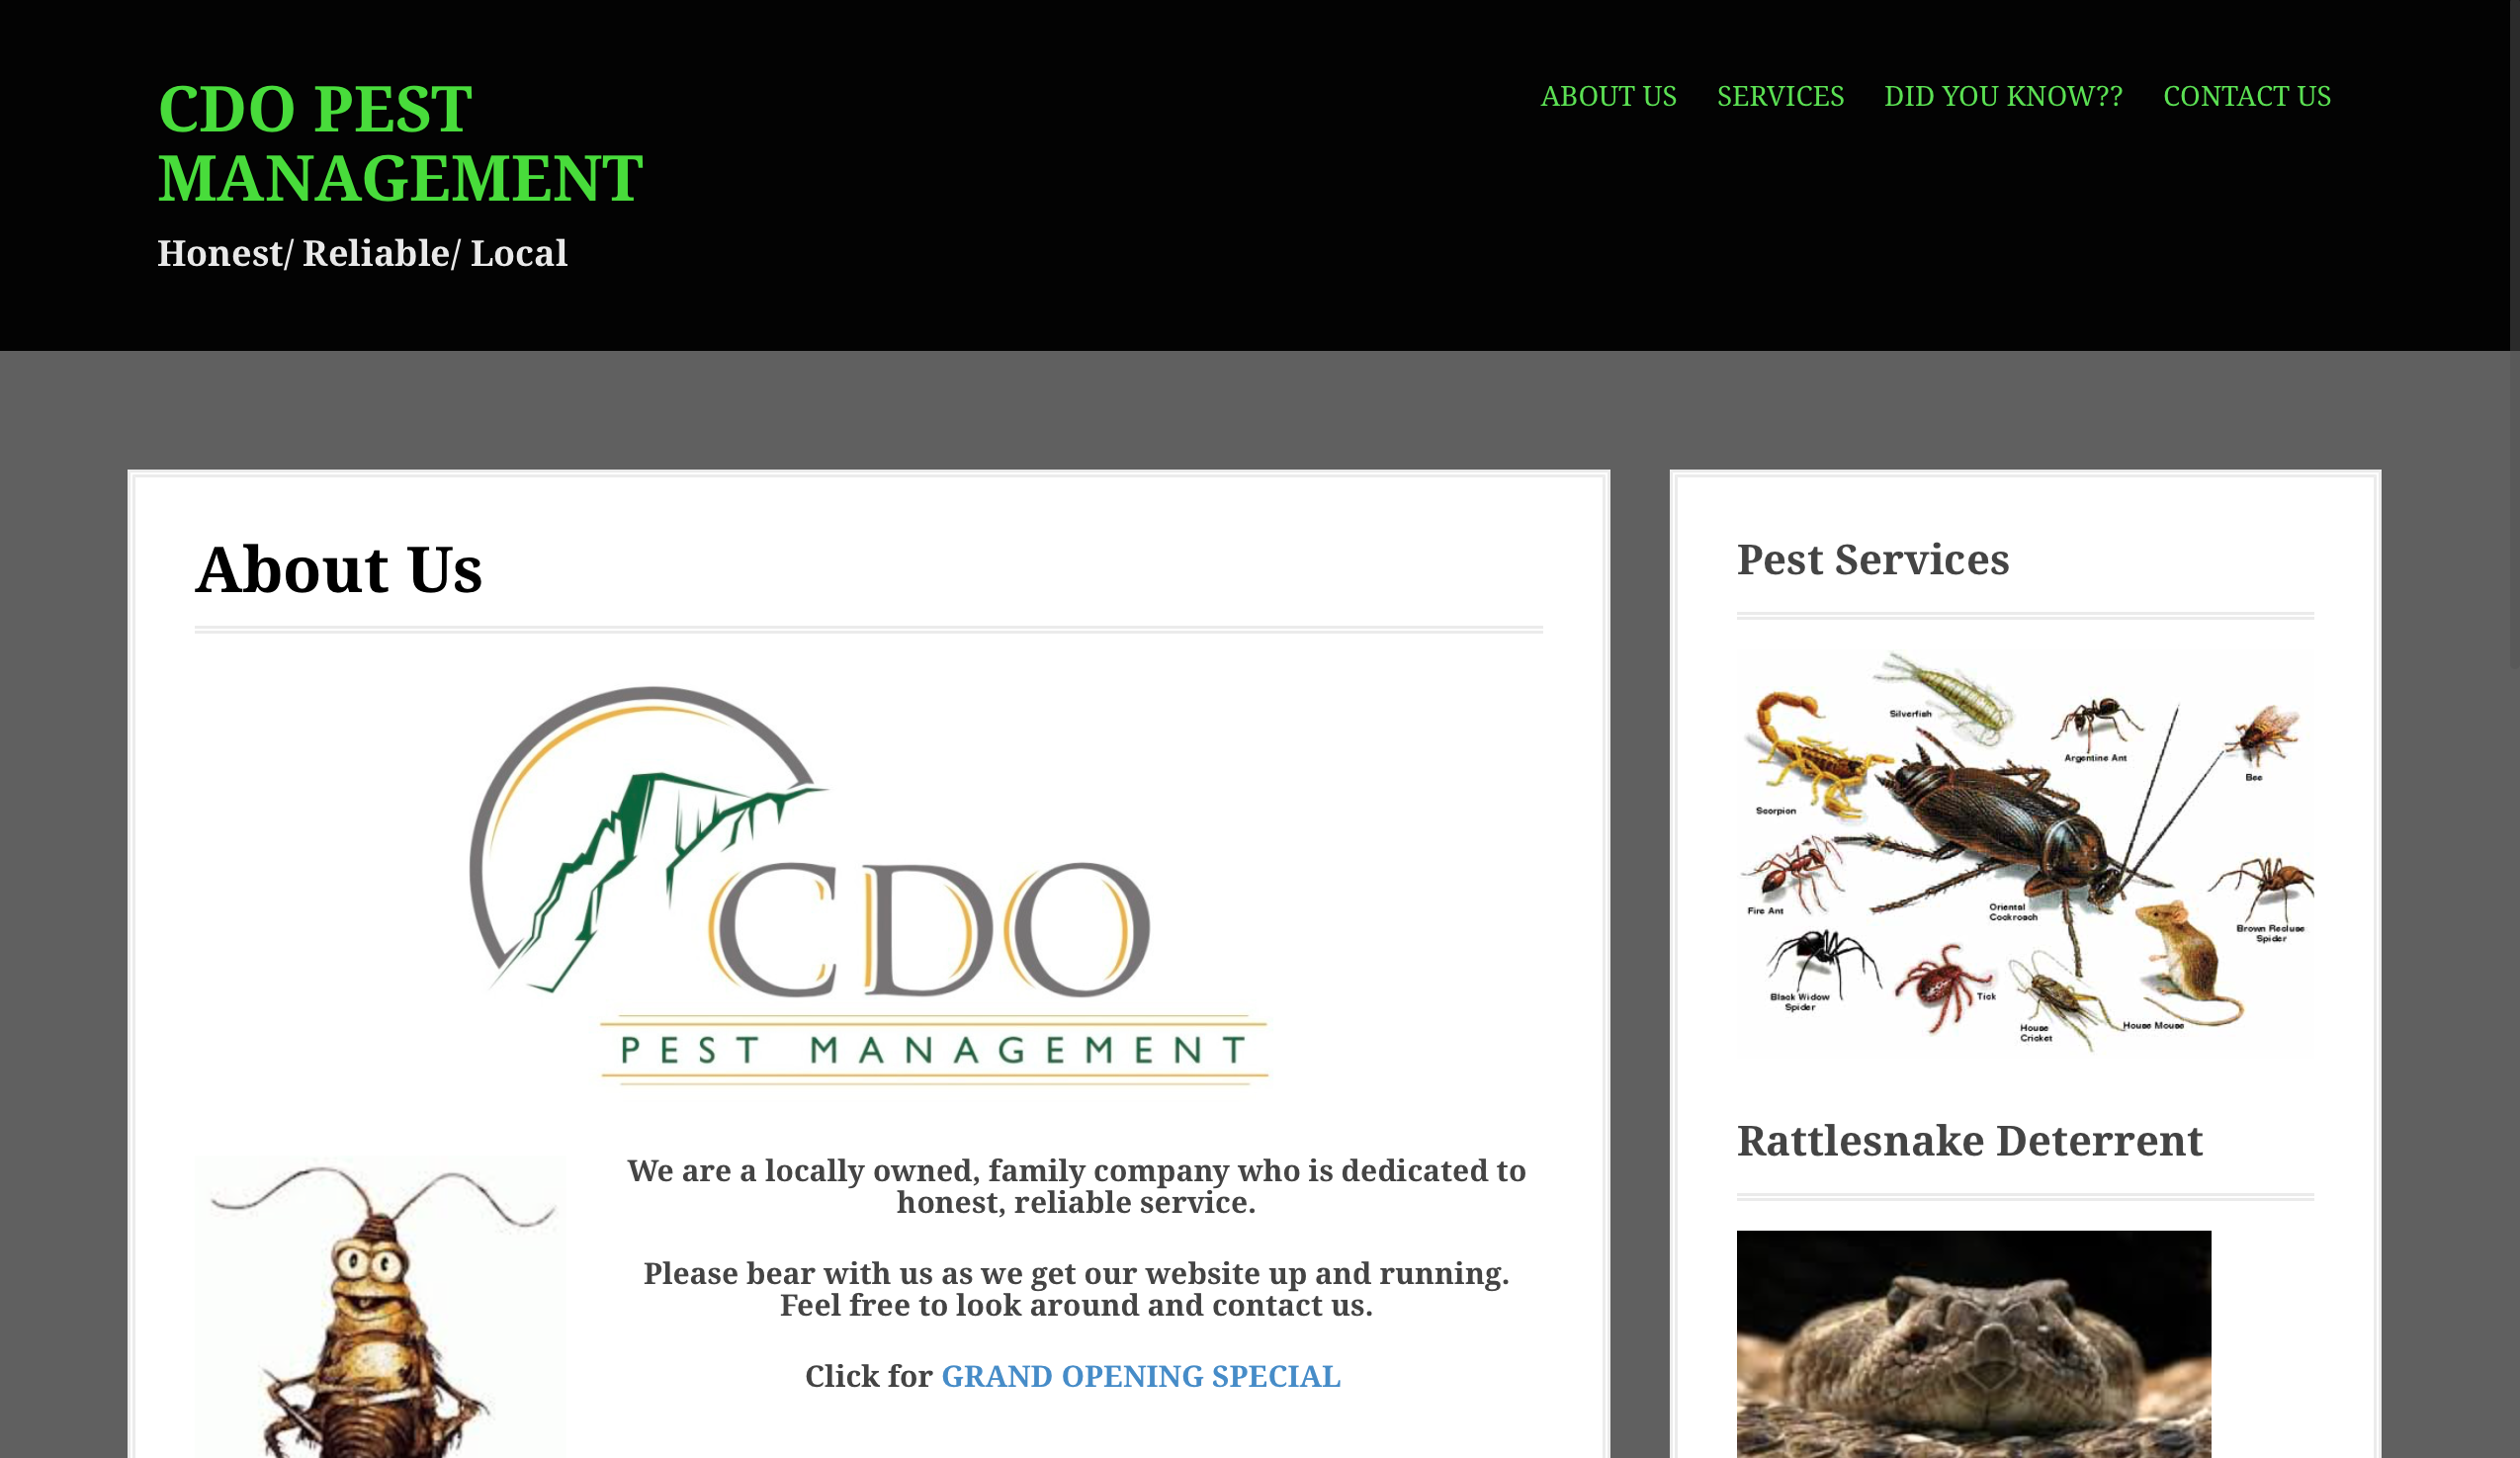 CDO Pest Management